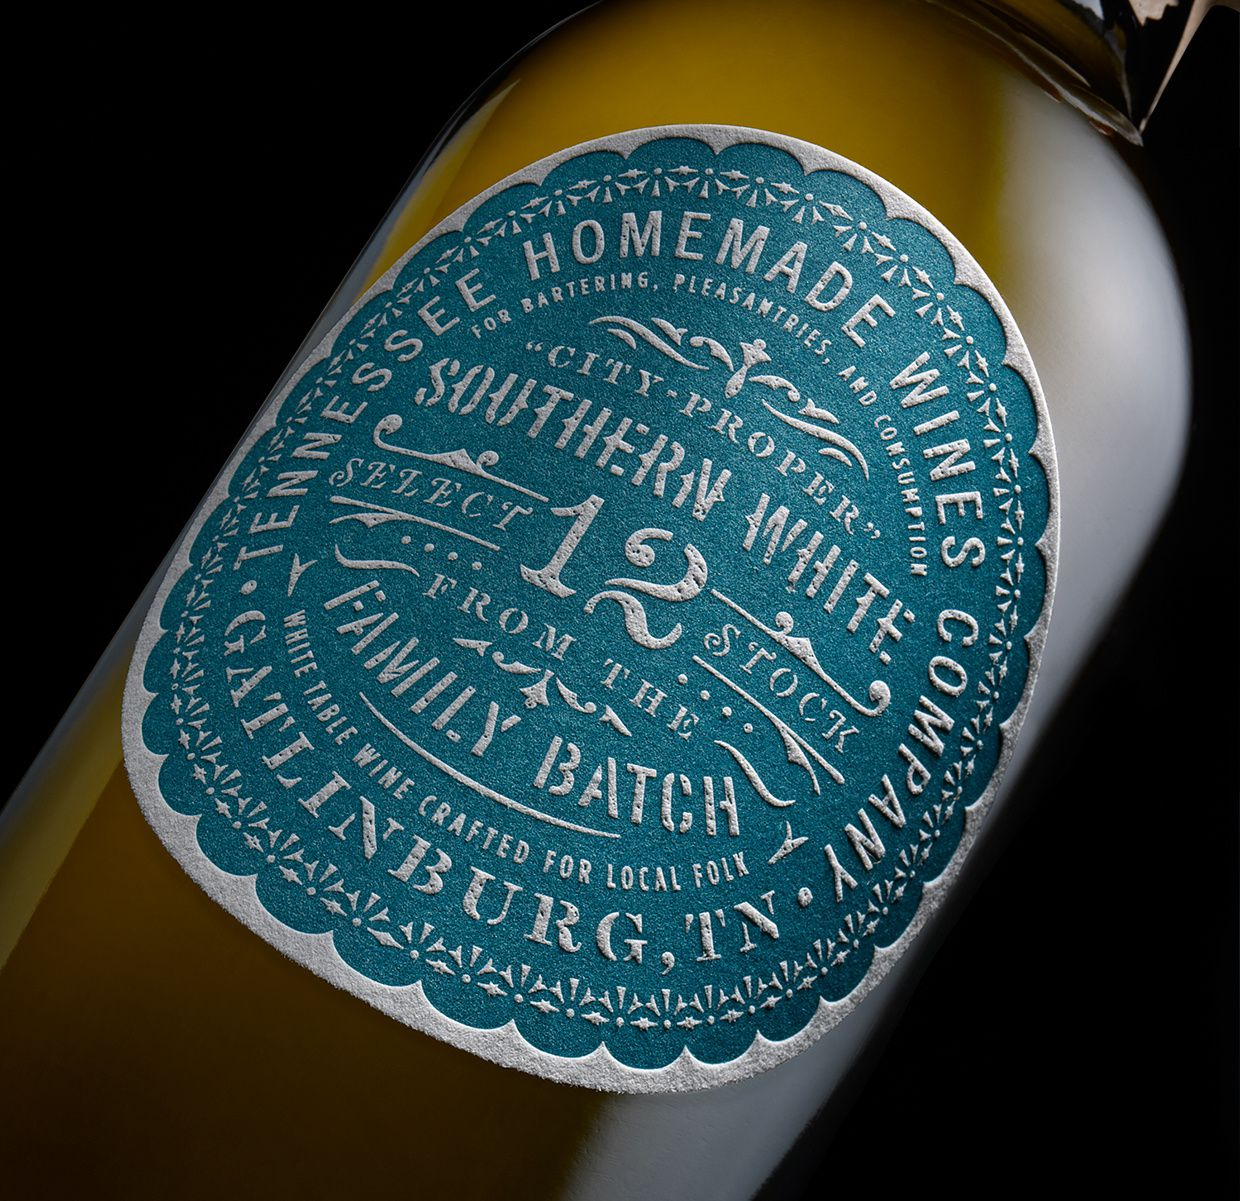 THV - Tennessee Homemade Wines (vin) | Design : Chad Michael Studio, Dallas, Etats-Unis (juillet 2016)